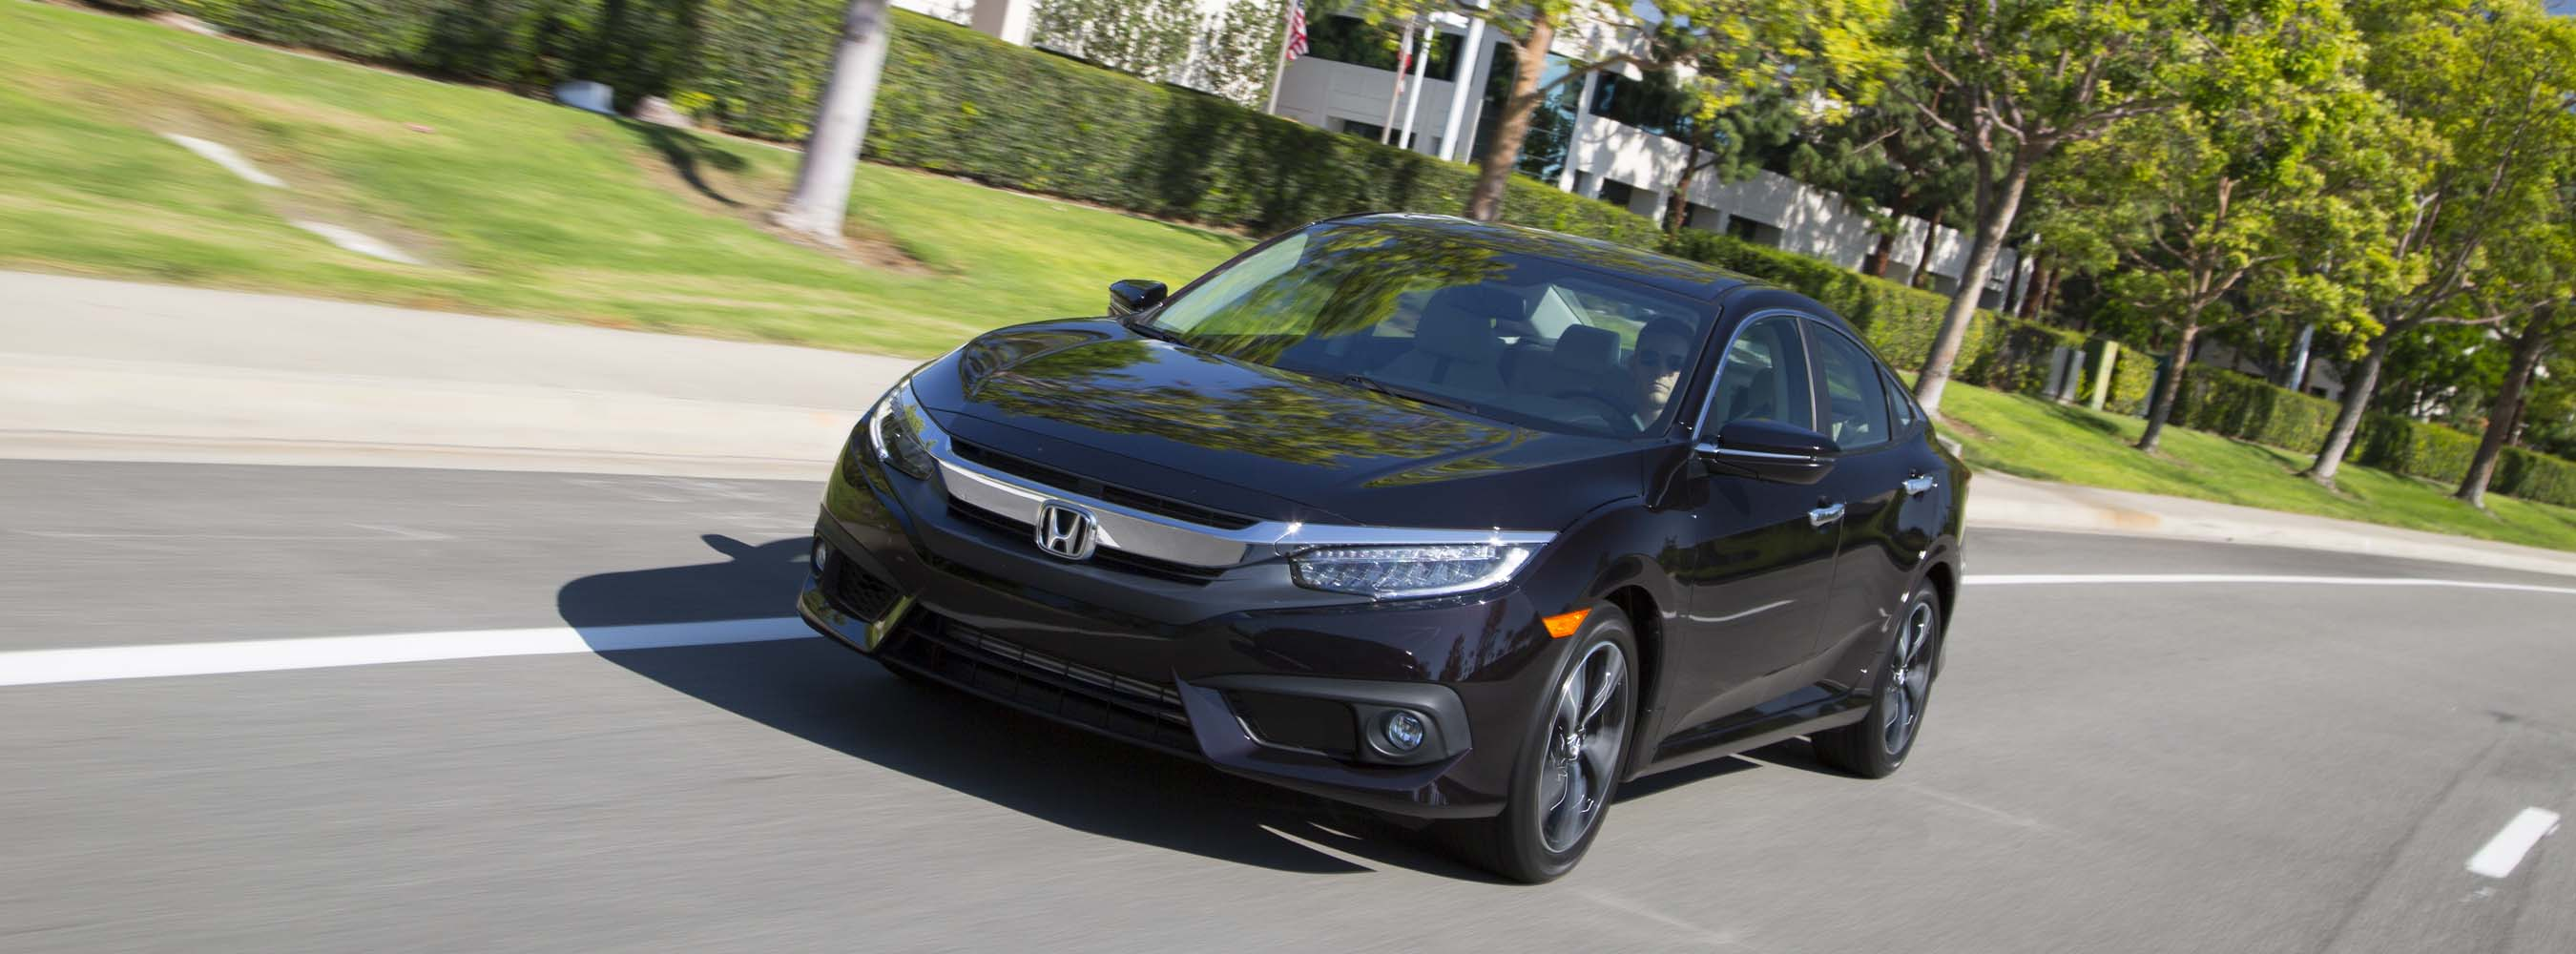 KELLEY BLUE BOOK ANNOUNCES WINNERS OF 2016 BEST BUY AWARDS REDESIGNED HONDA CIVIC NAMED THIS YEARS OVERALL